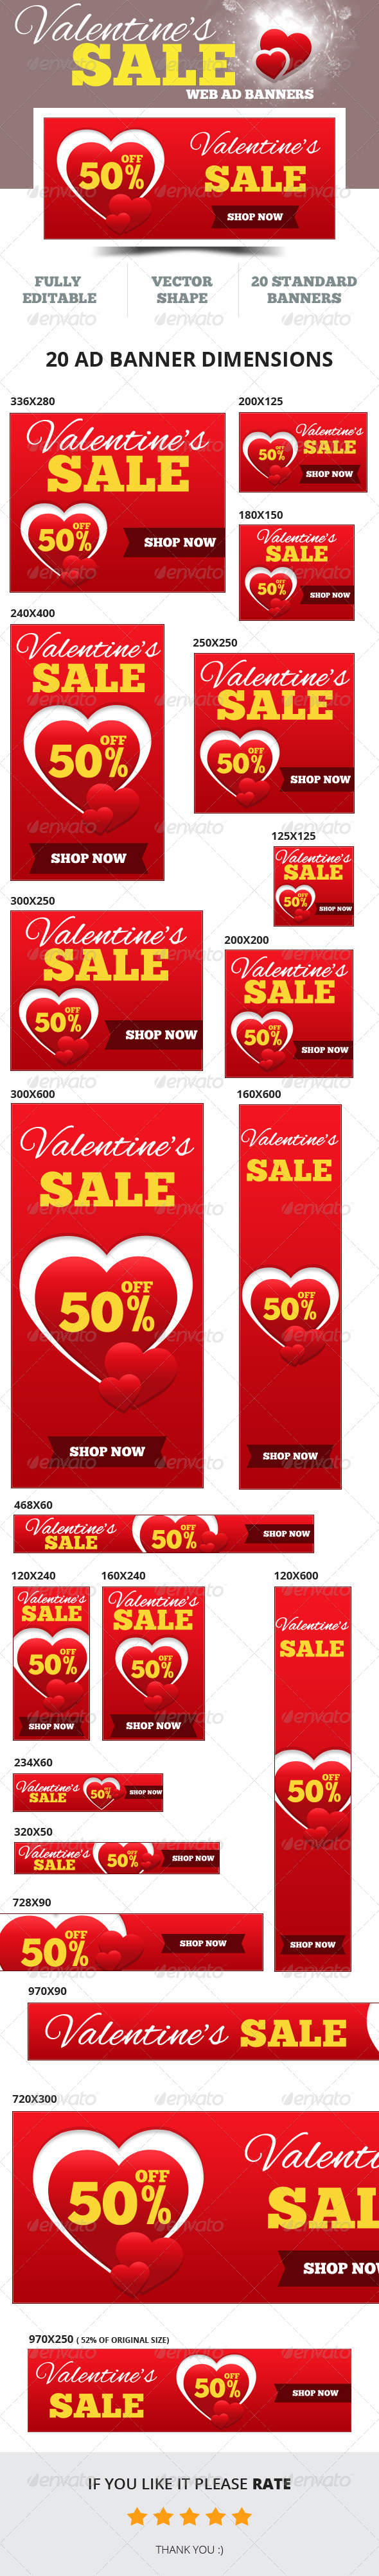 Valentine's Sale Web Ad Banners